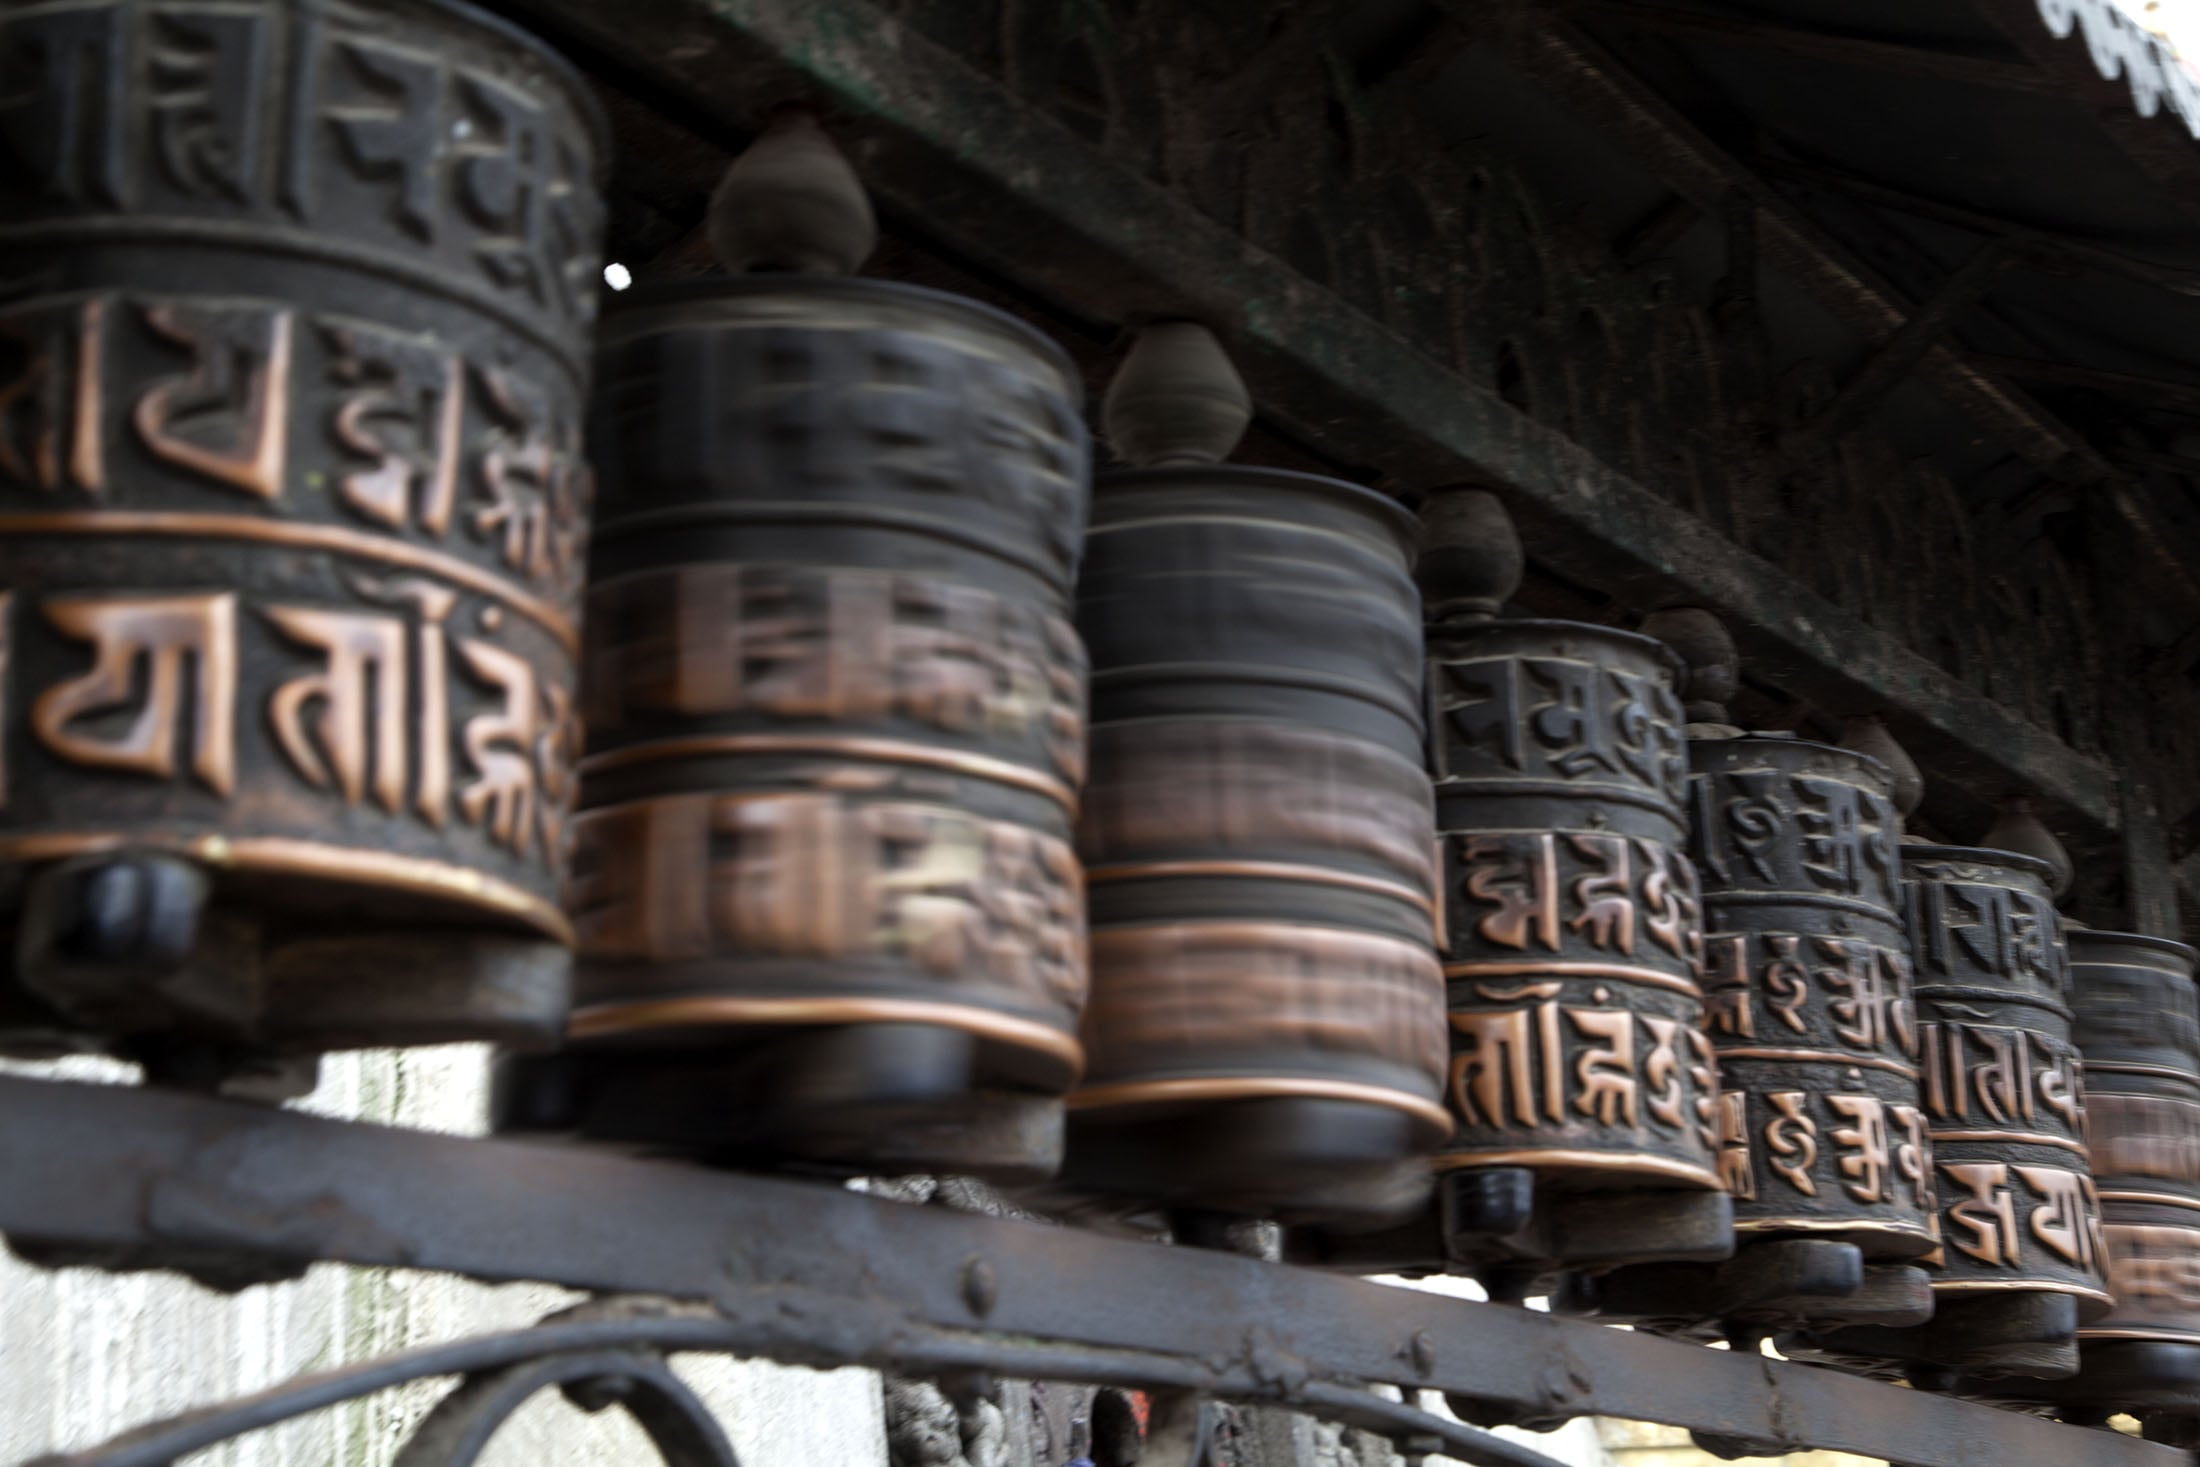 prayerwheels.jpg